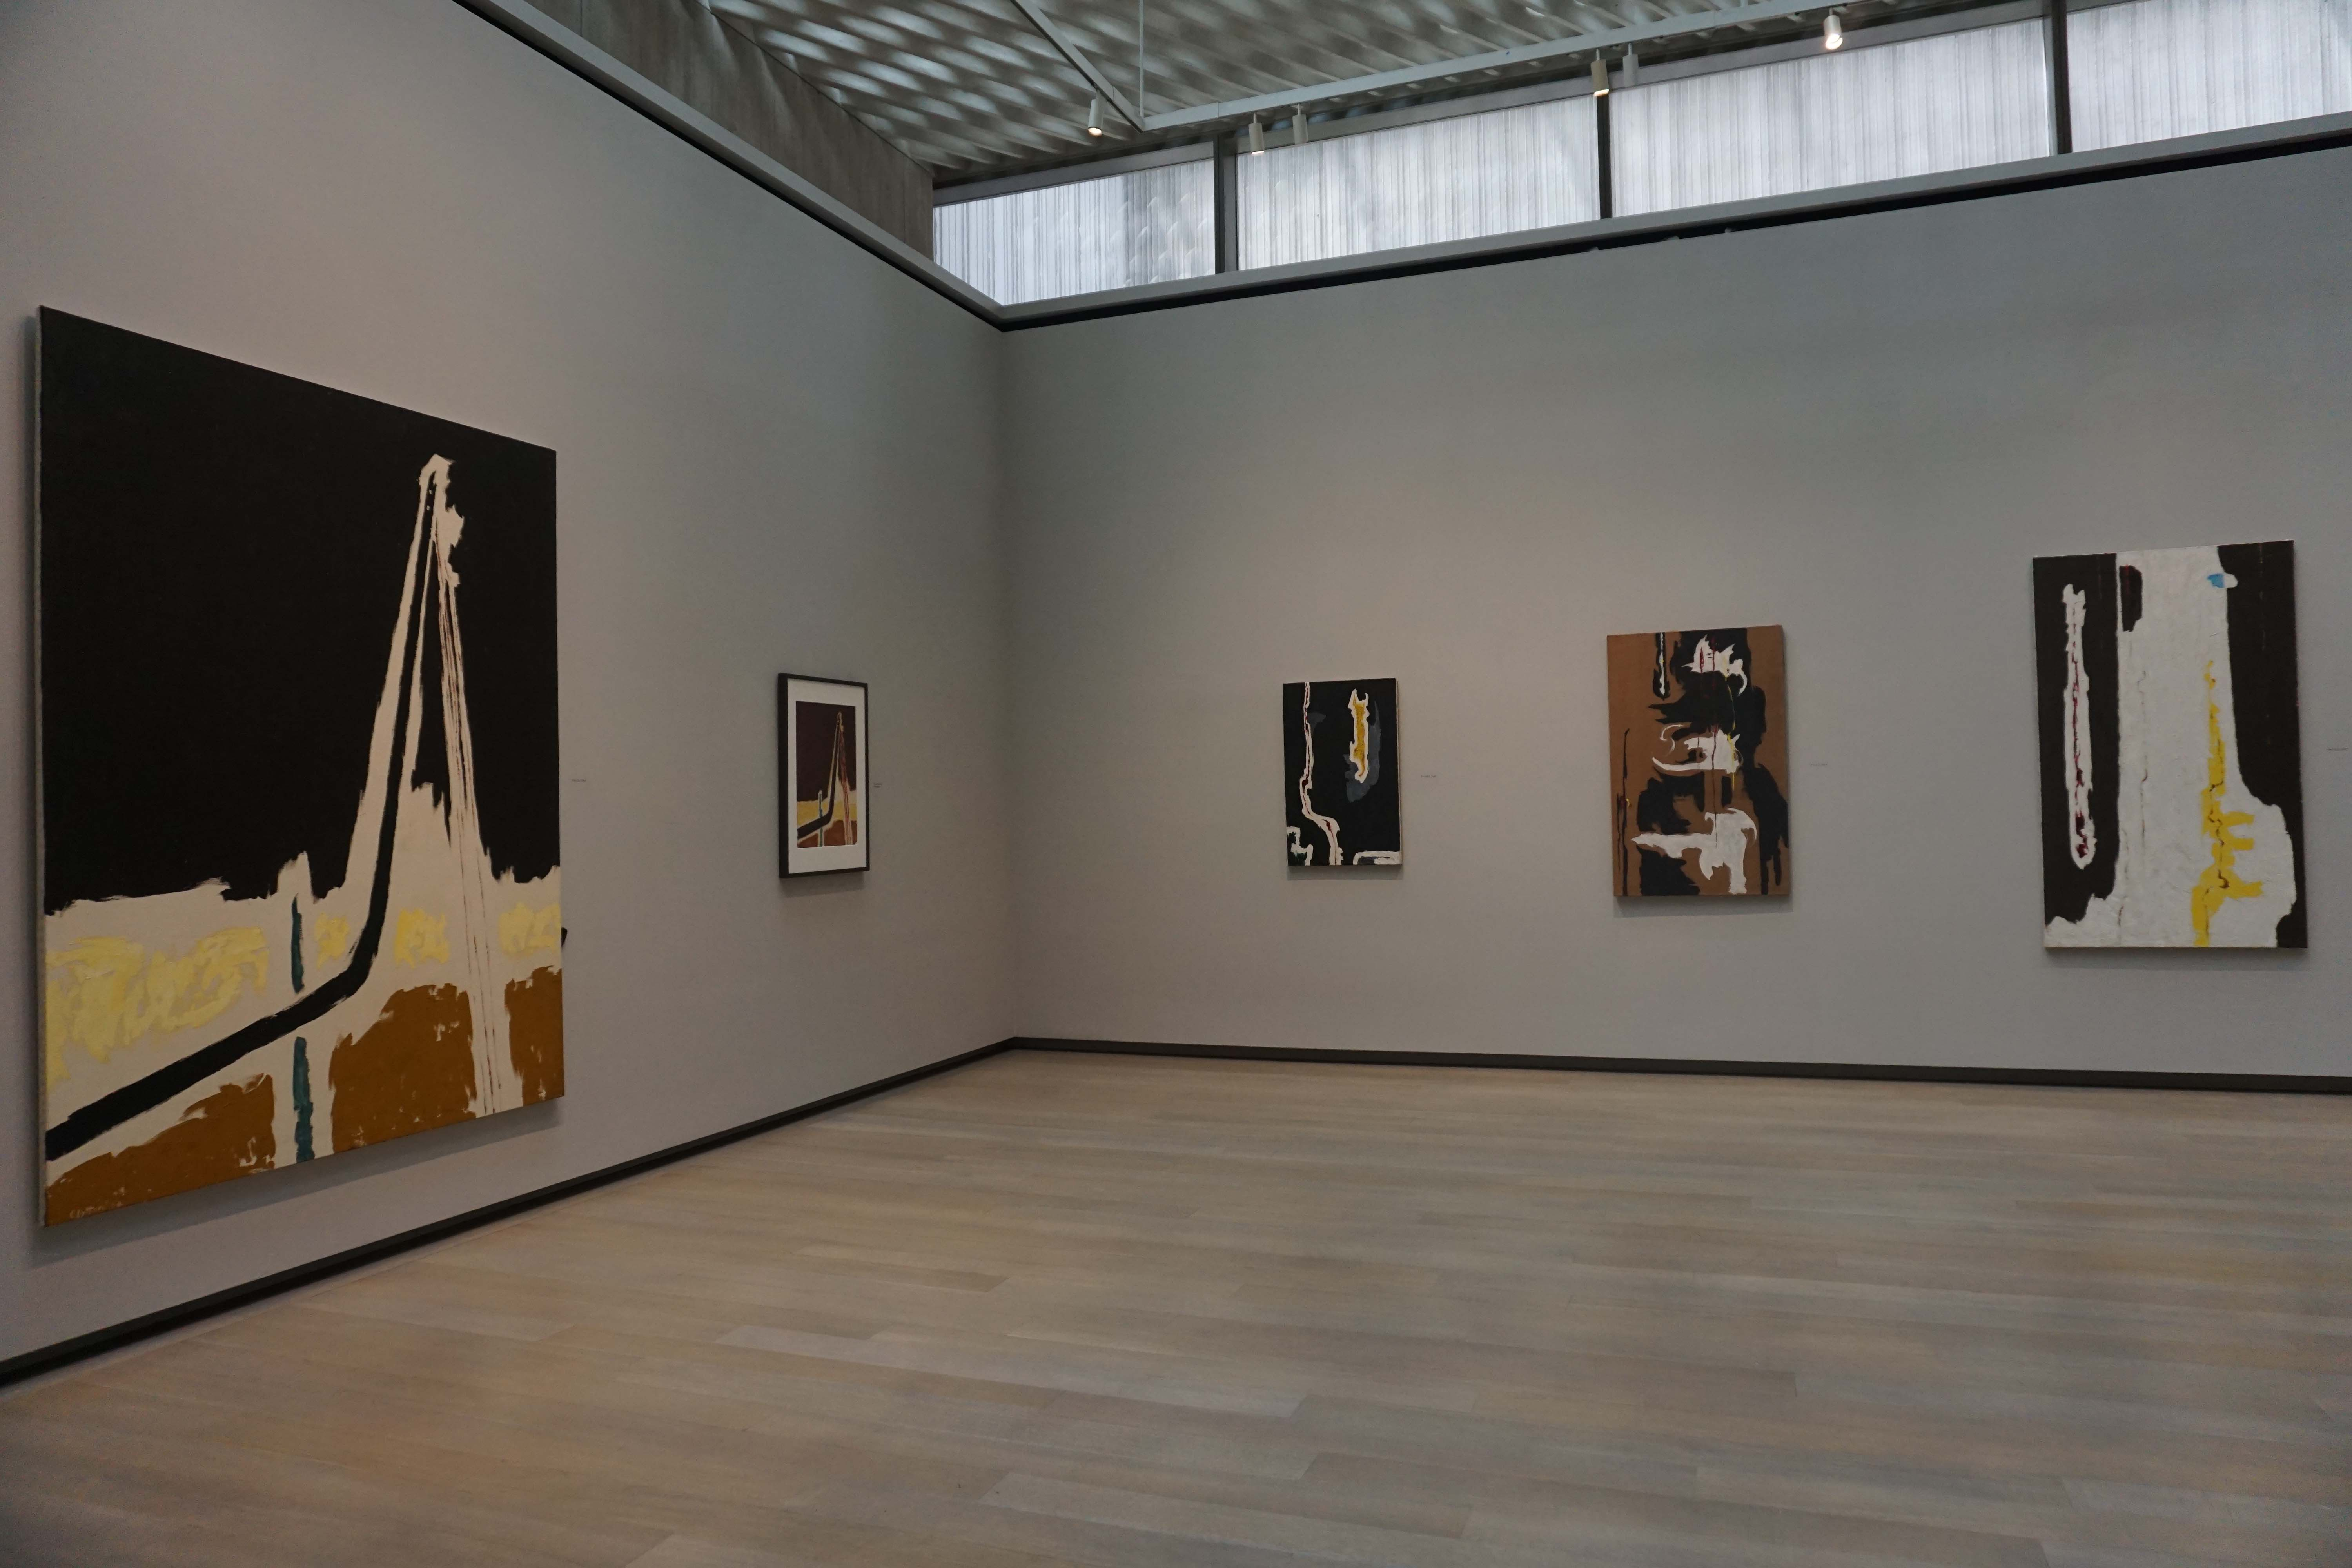 Clyfford Still Museum, See article for other things to do in Denver